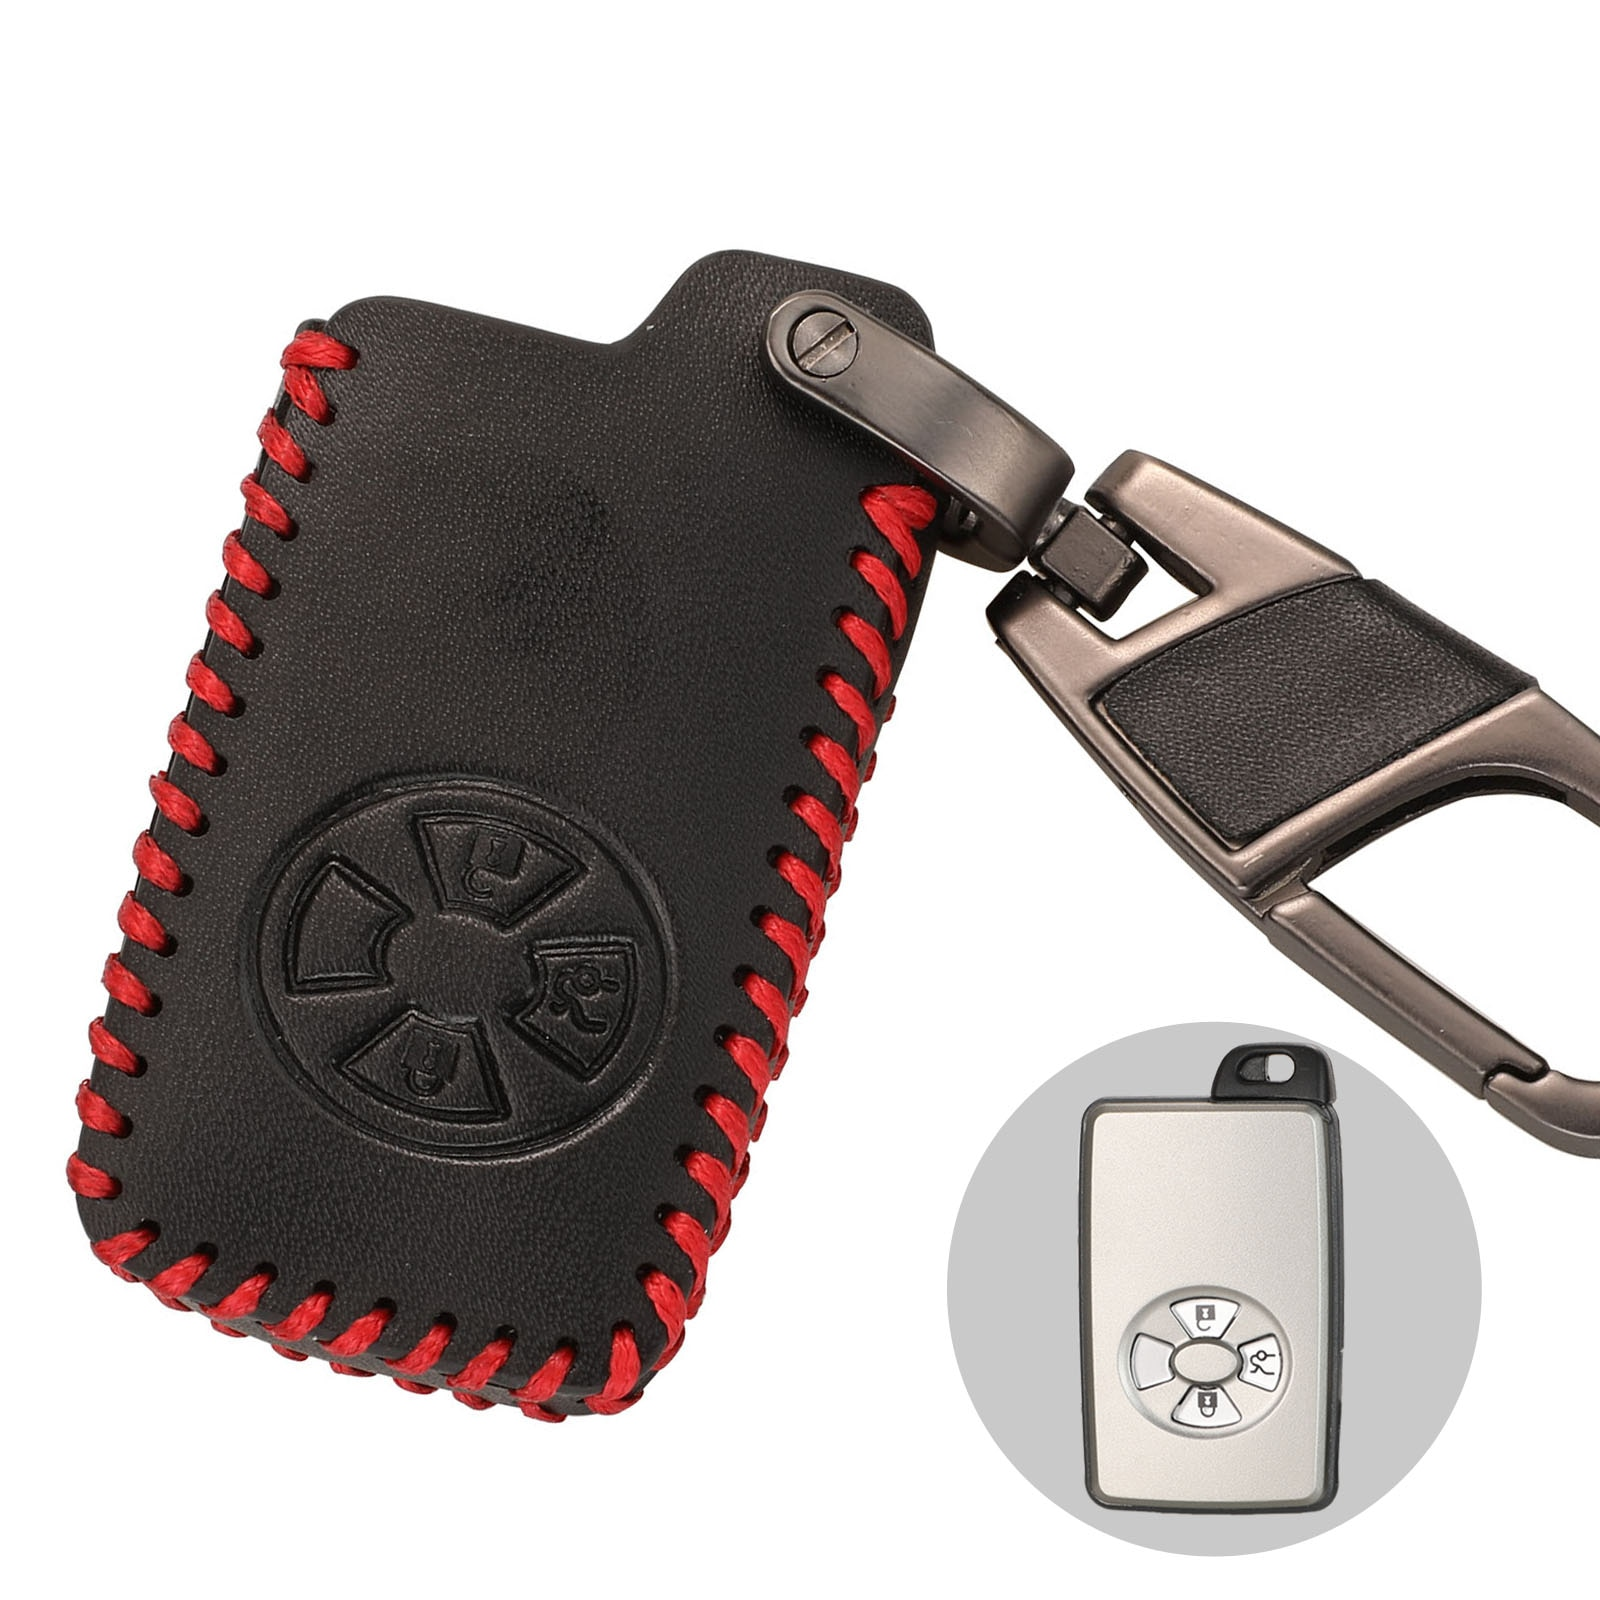 Kutery 3 Buttons Remote Car Key Case Cover For Toyota Rav4 Yaris Mark X Hilux Vitz Keys Keychain Leather Case With Key Ring